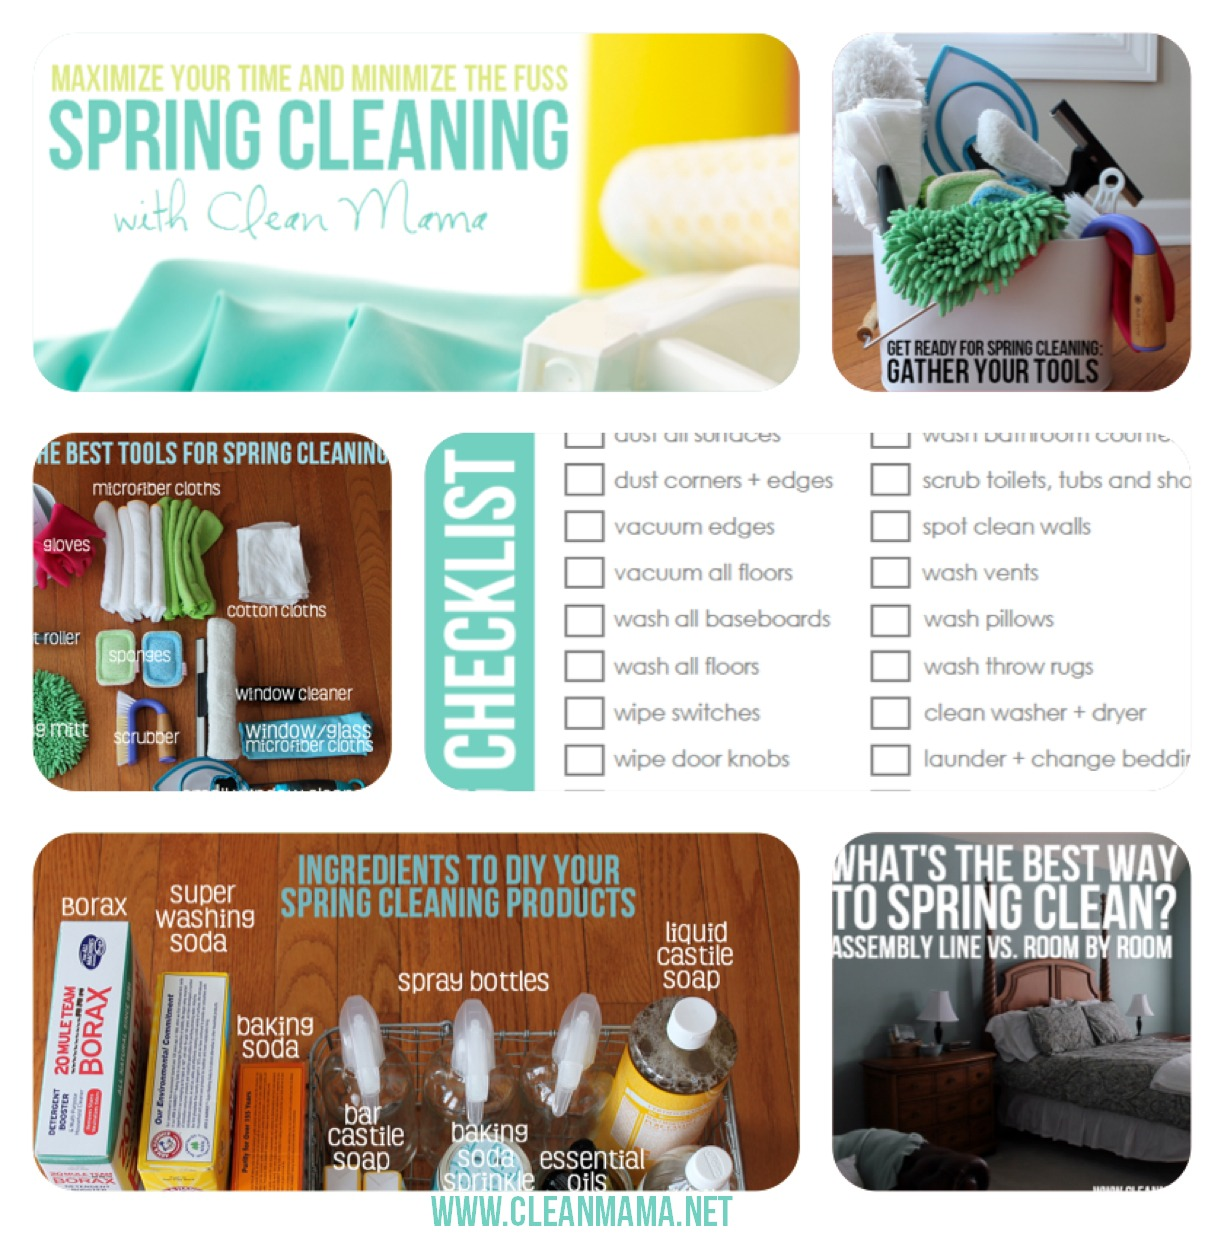 Maximize Your Time and Minimize the Fuss - Spring Cleaning With Clean Mama